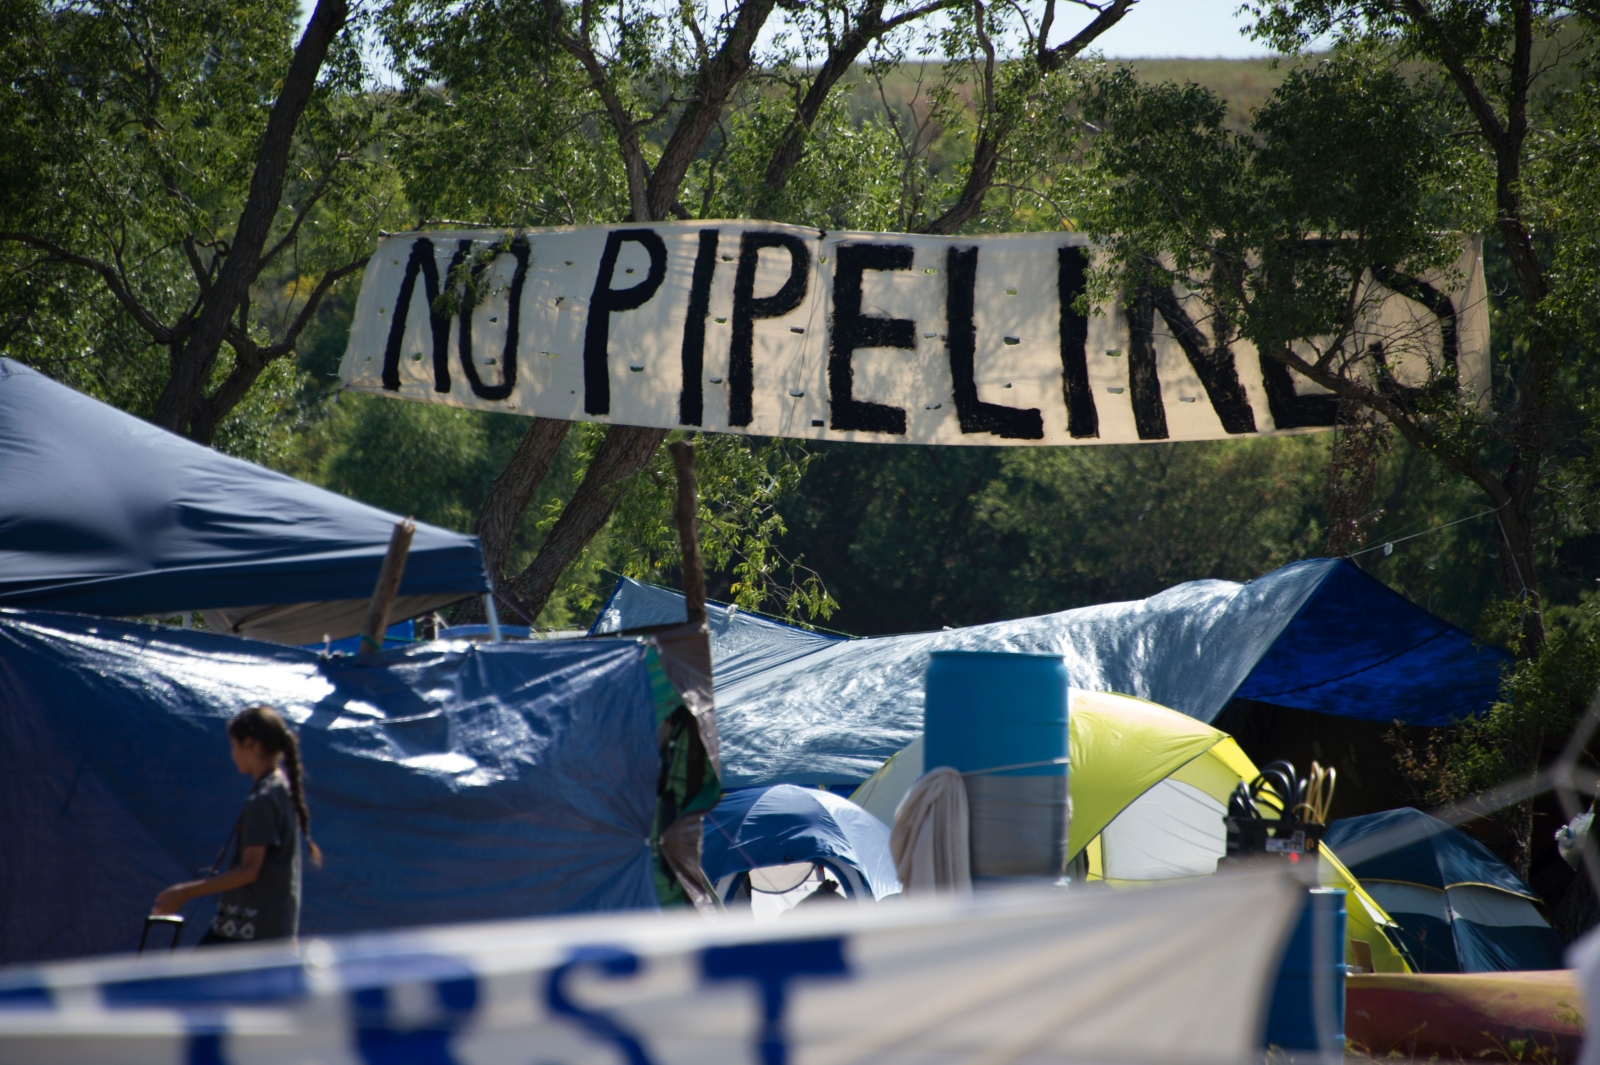 US-ENVIRONMENT-OIL-PROTEST-PIPELINE